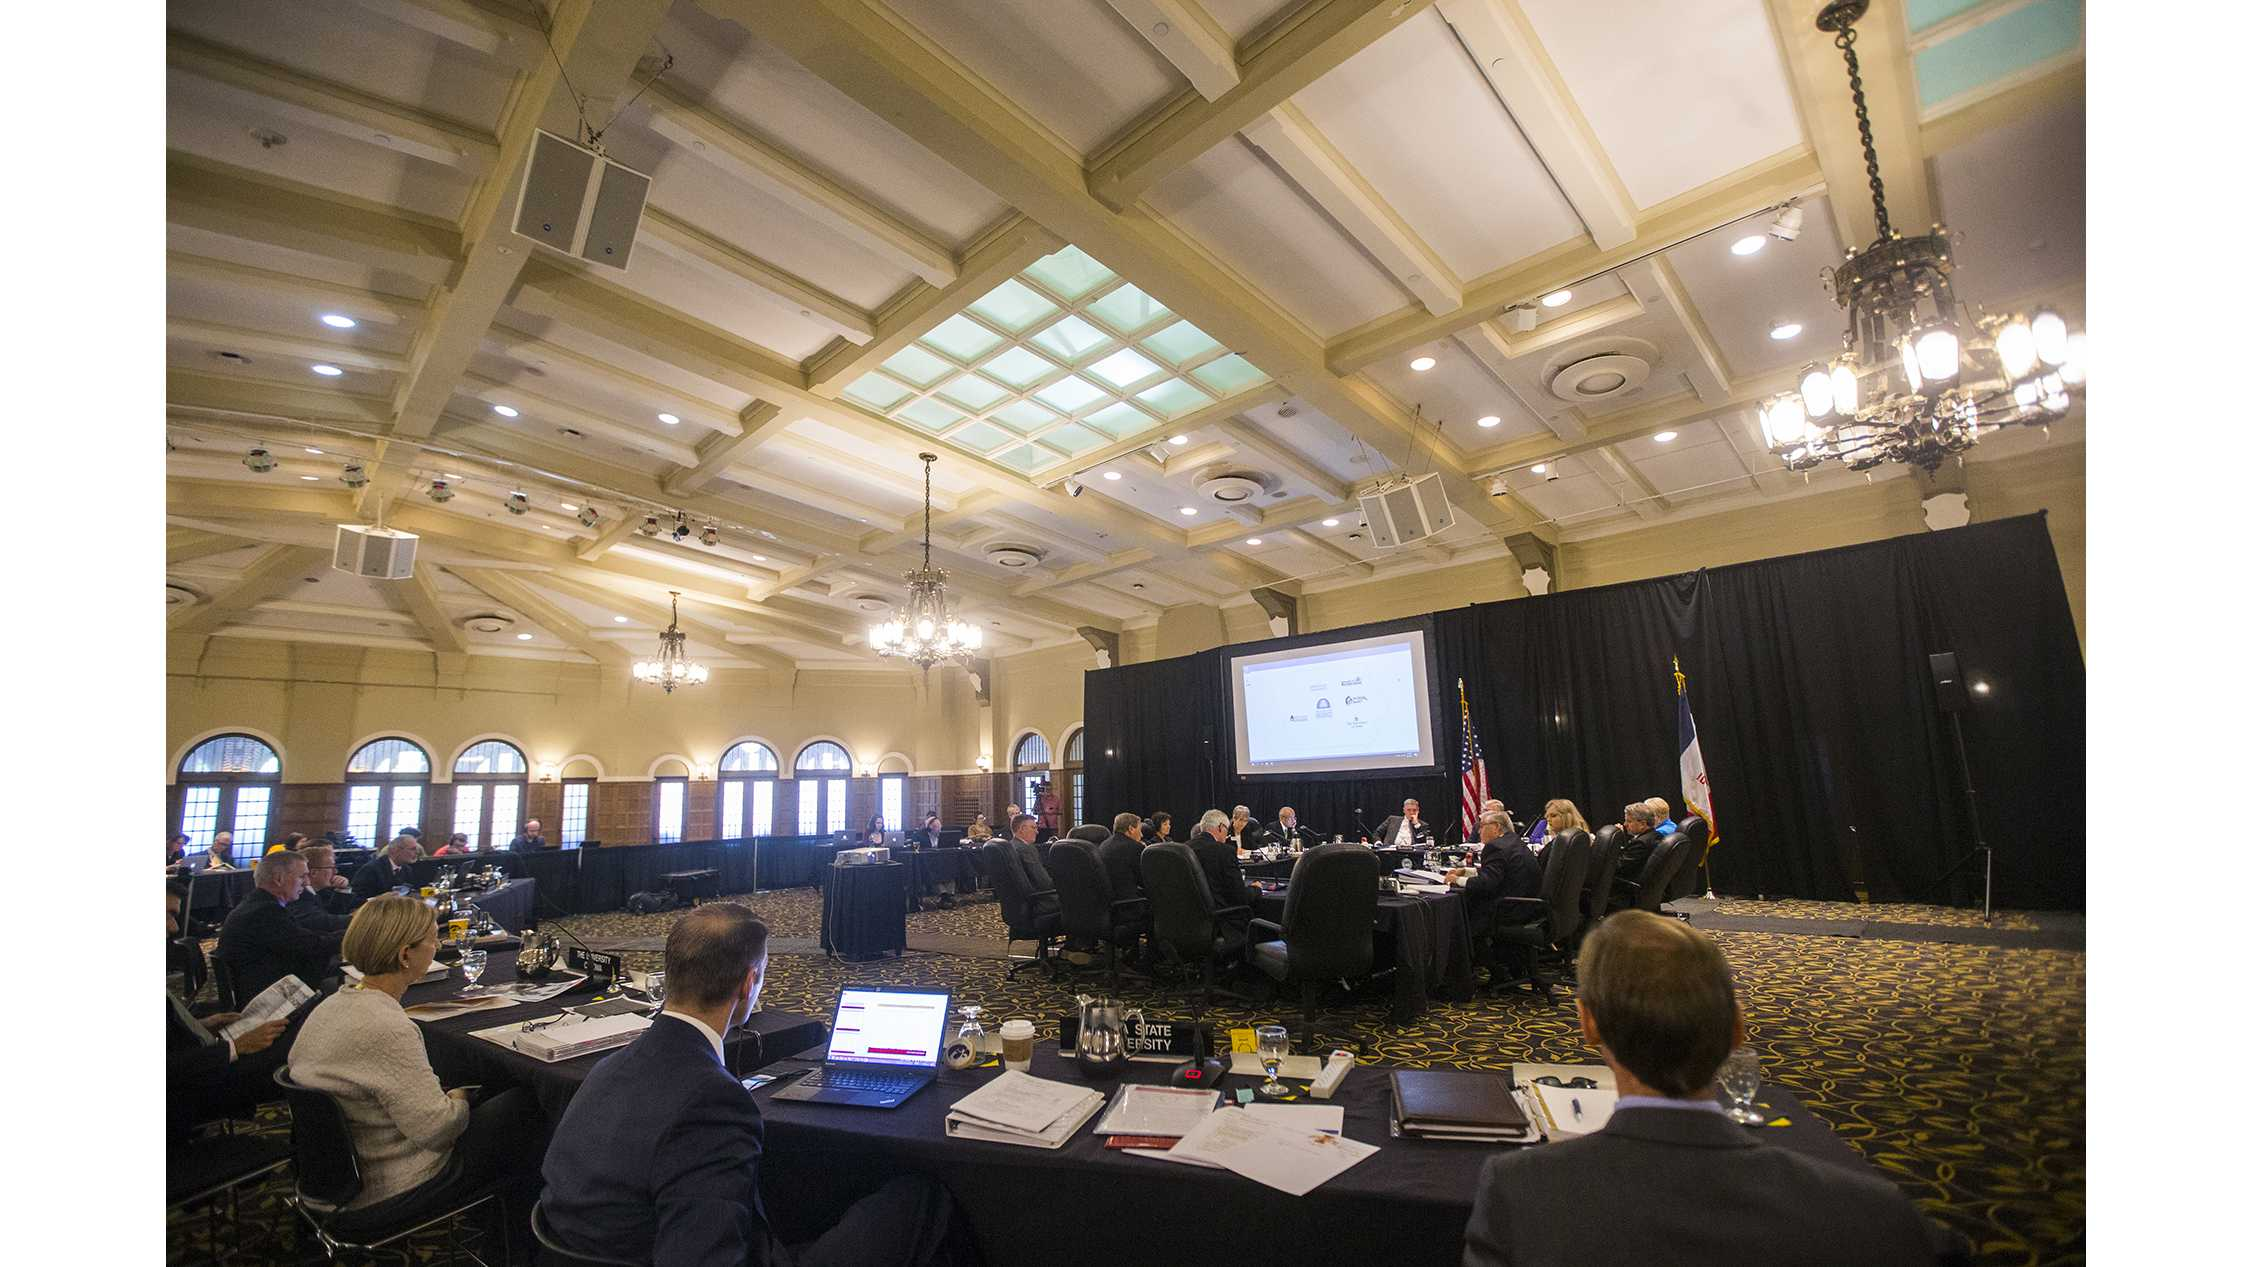 FILE - Regents listen to a presentation during a state Board of Regents meeting in the IMU main lounge on Thursday, Sept. 7, 2017. The regents provided a summary of the state's funding situation and discussed future steps they would take to make a predictable tuition plan. (Joseph Cress/The Daily Iowan)